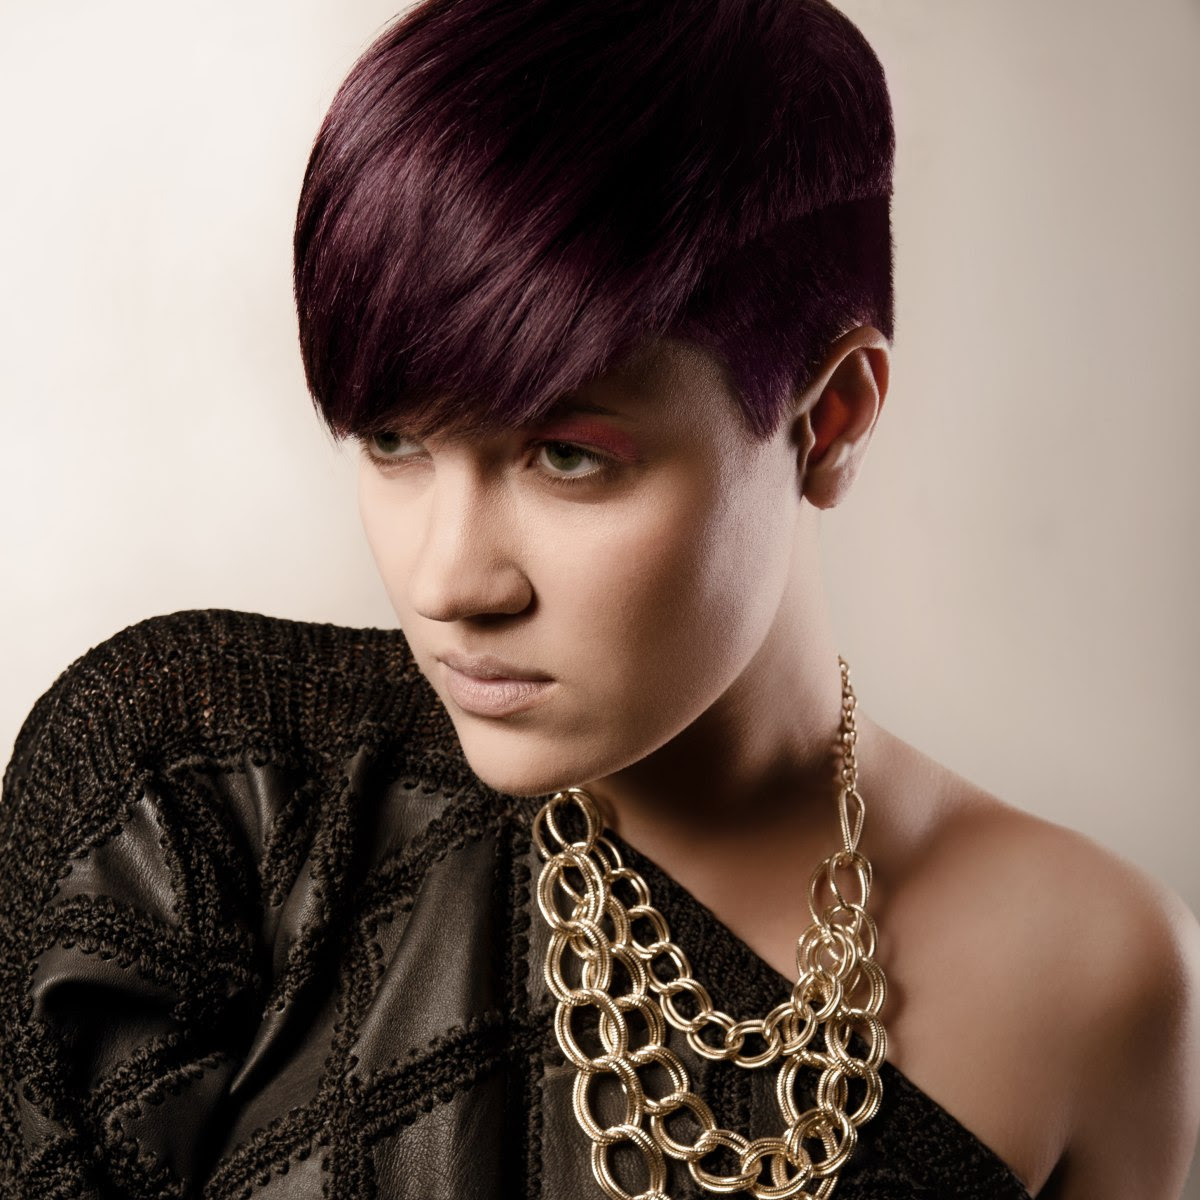 Purple hair with the sides and back cut ultra short